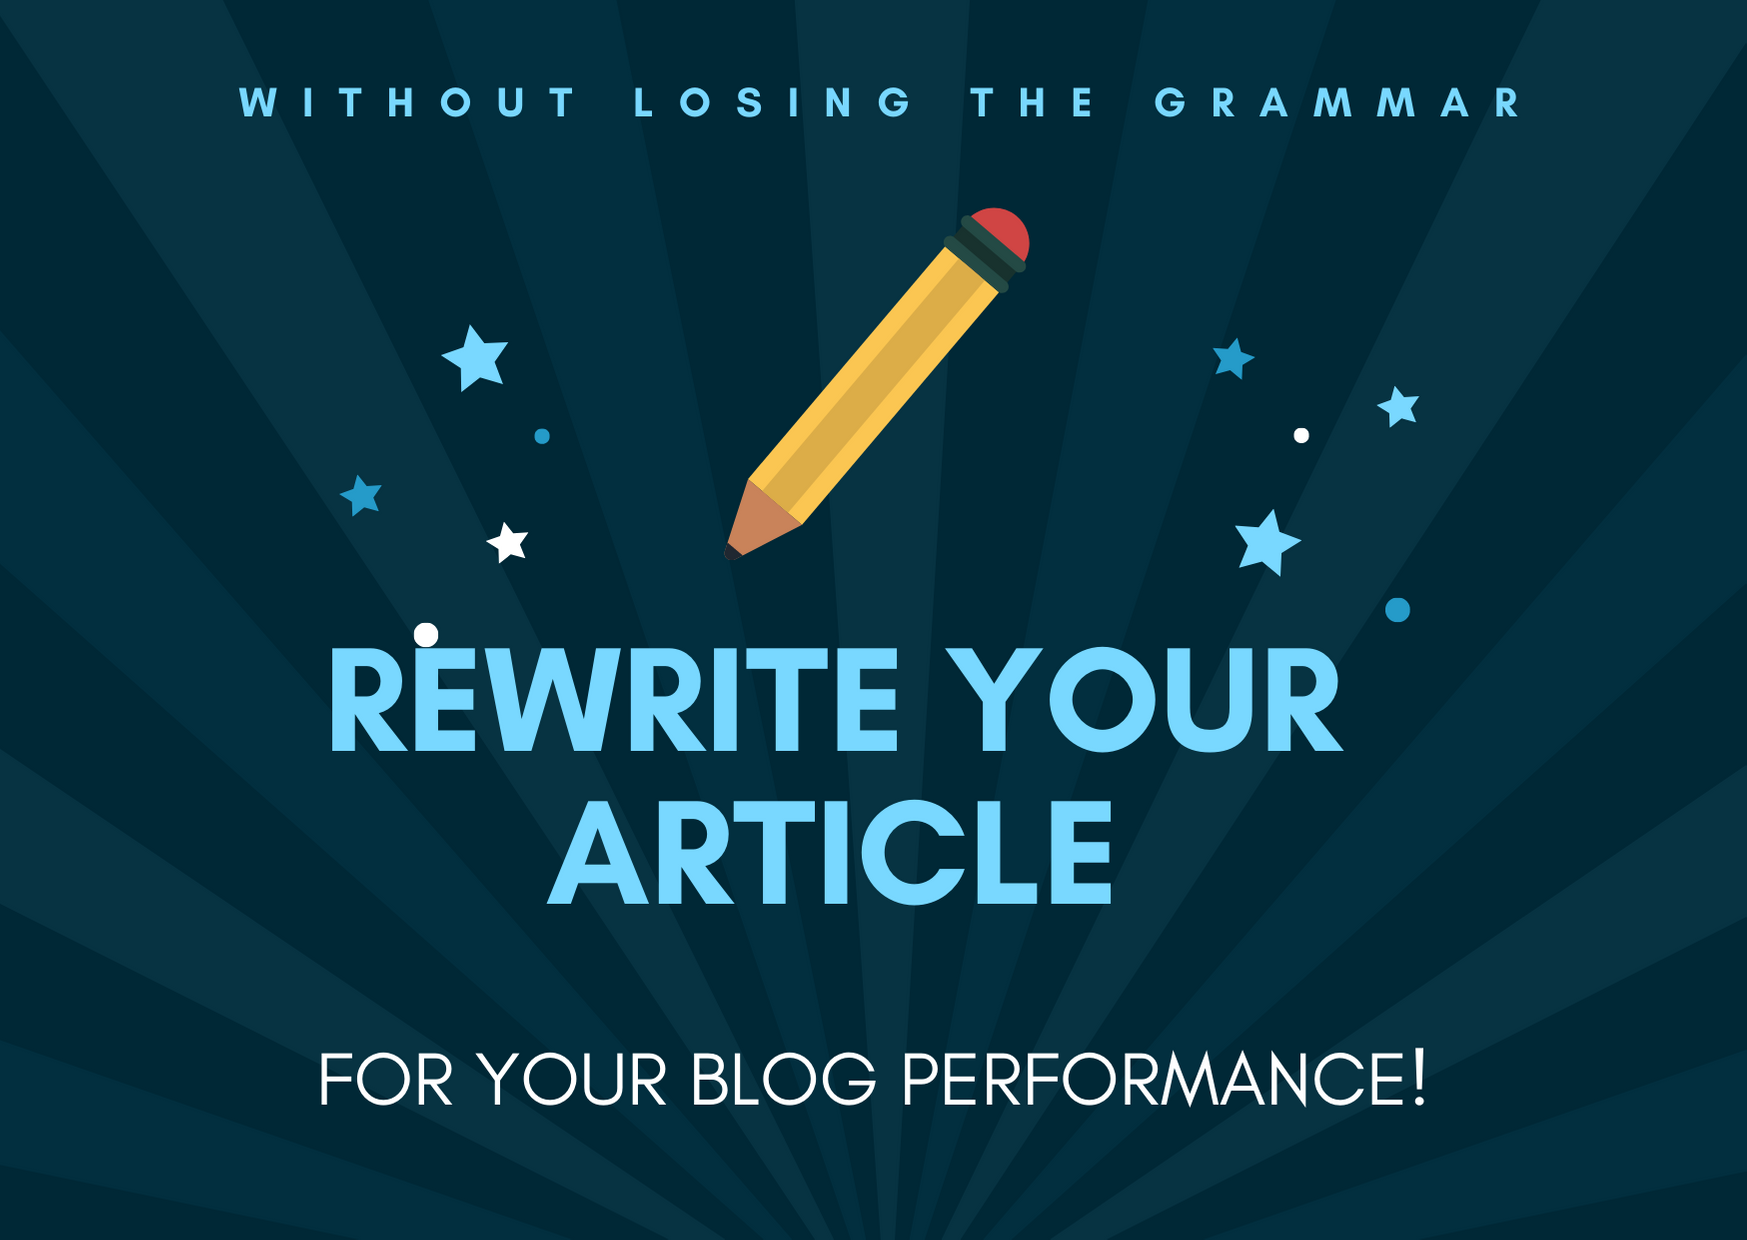 I Will Rewrite your 5 pages Article without losing the content